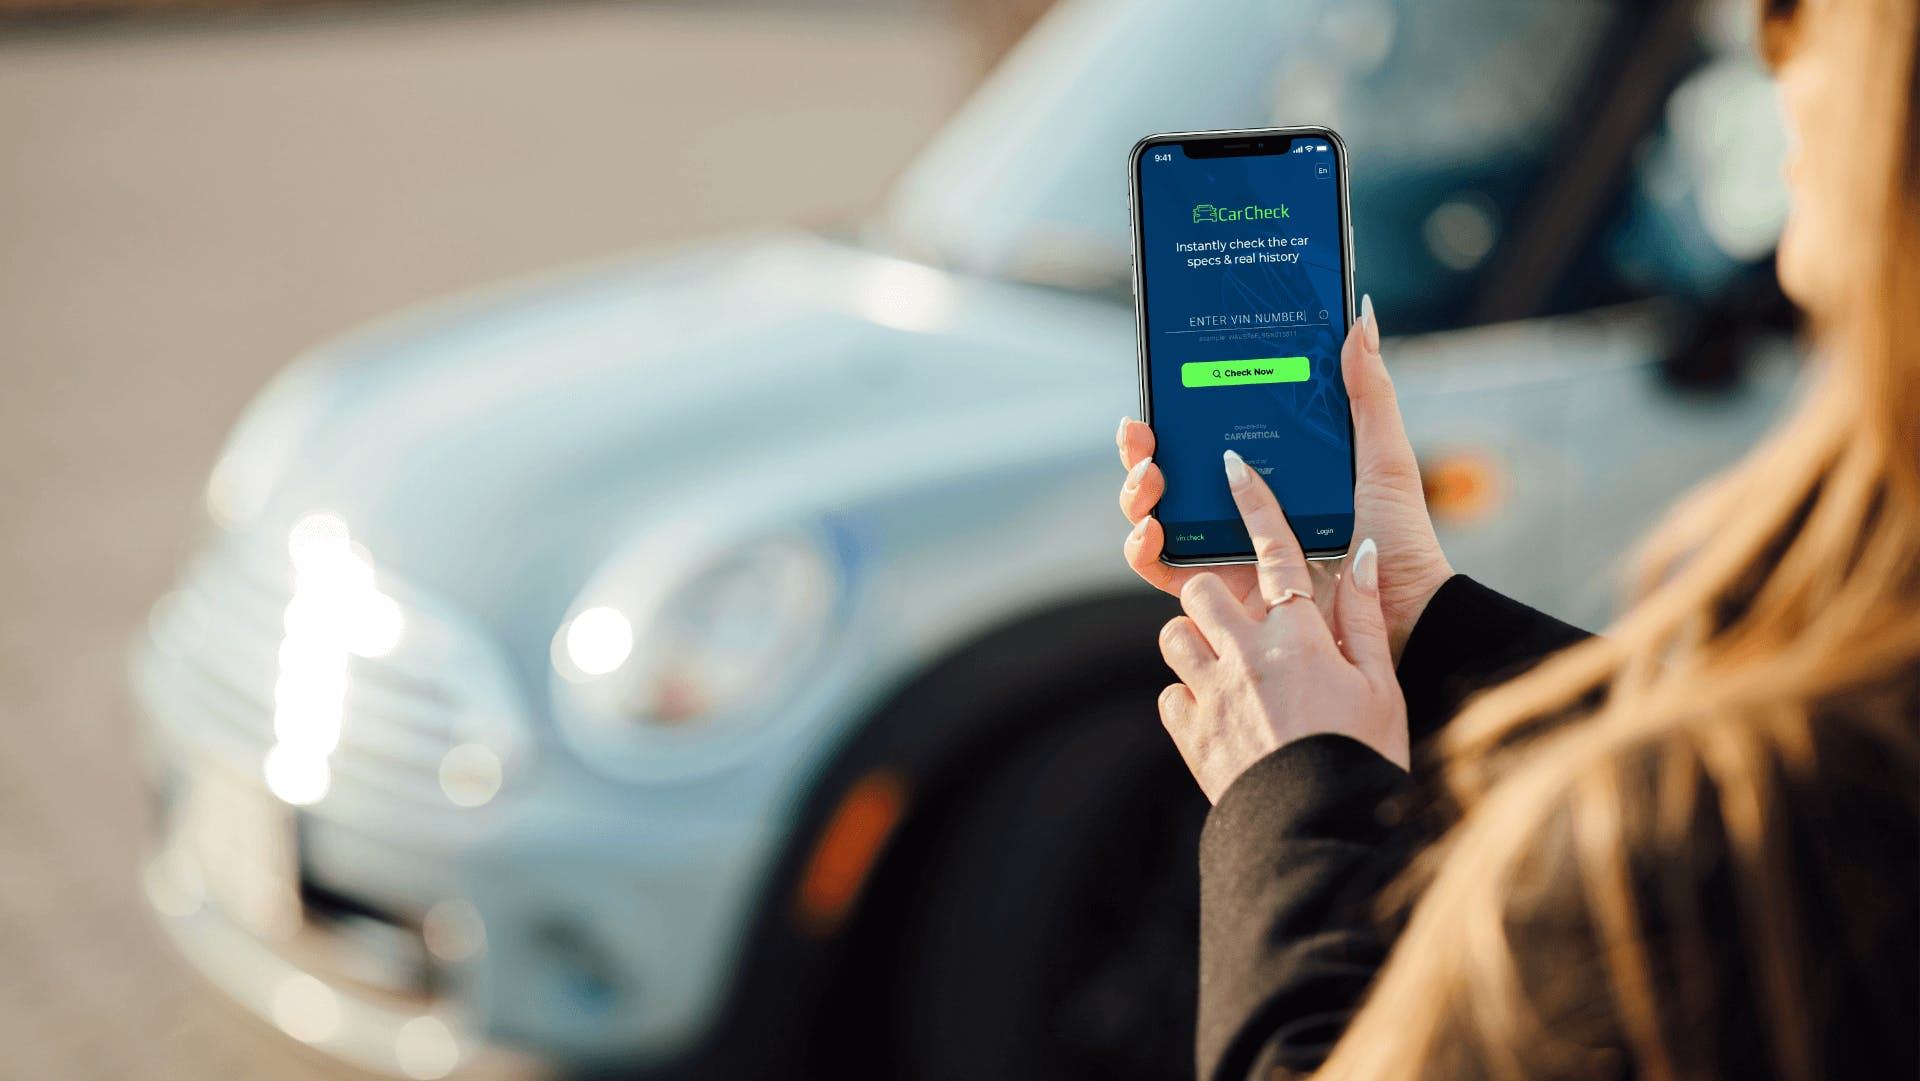 Turn Your Smartphone Into the Car Check Expert With This New App